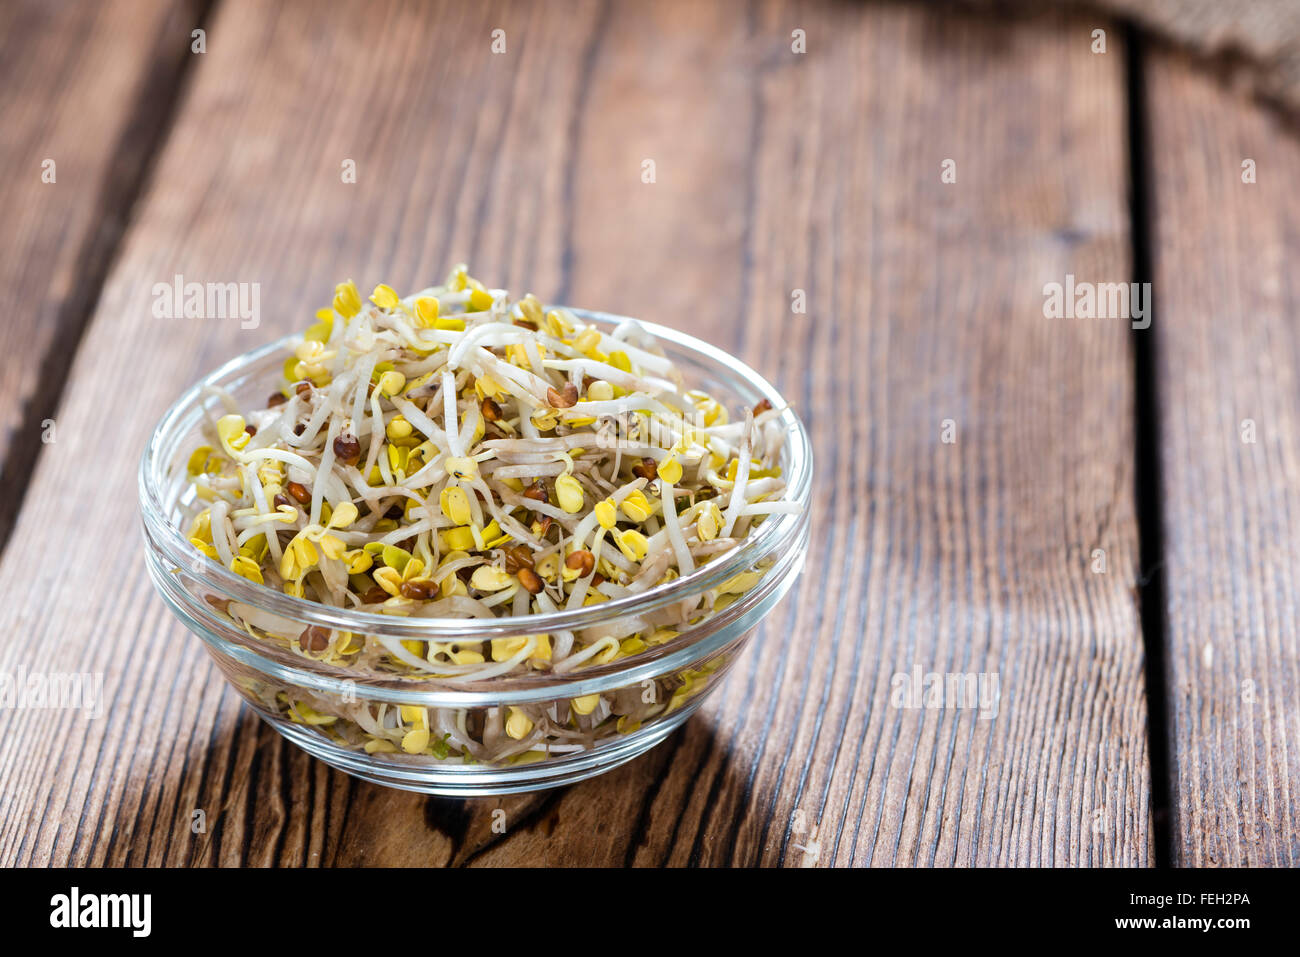 Some fresh Radish Sprouts on rustic wooden background - Stock Image